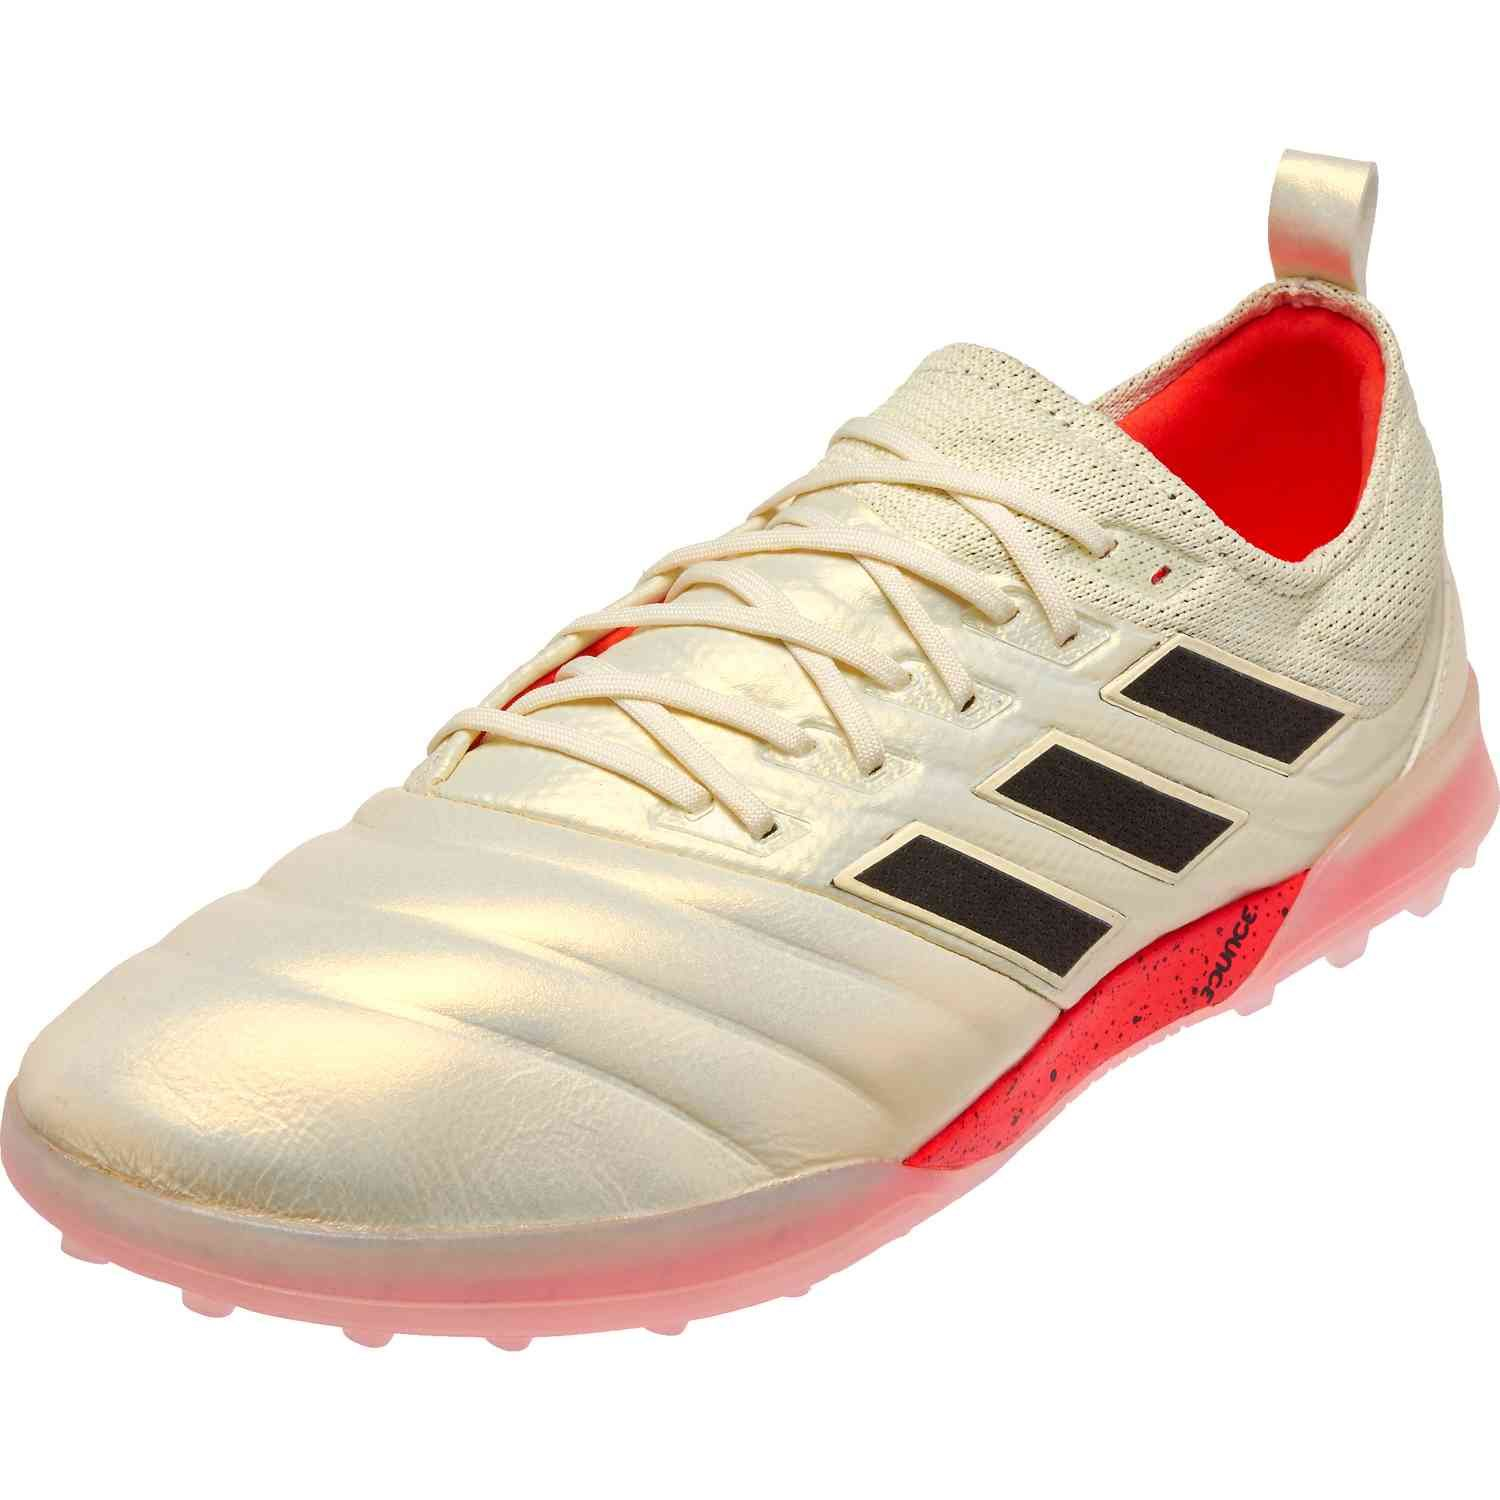 8407a6ab1f Buy the adidas Copa Tango 19.1 Turf Soccer Shoes from SoccerPro. Get them  from here